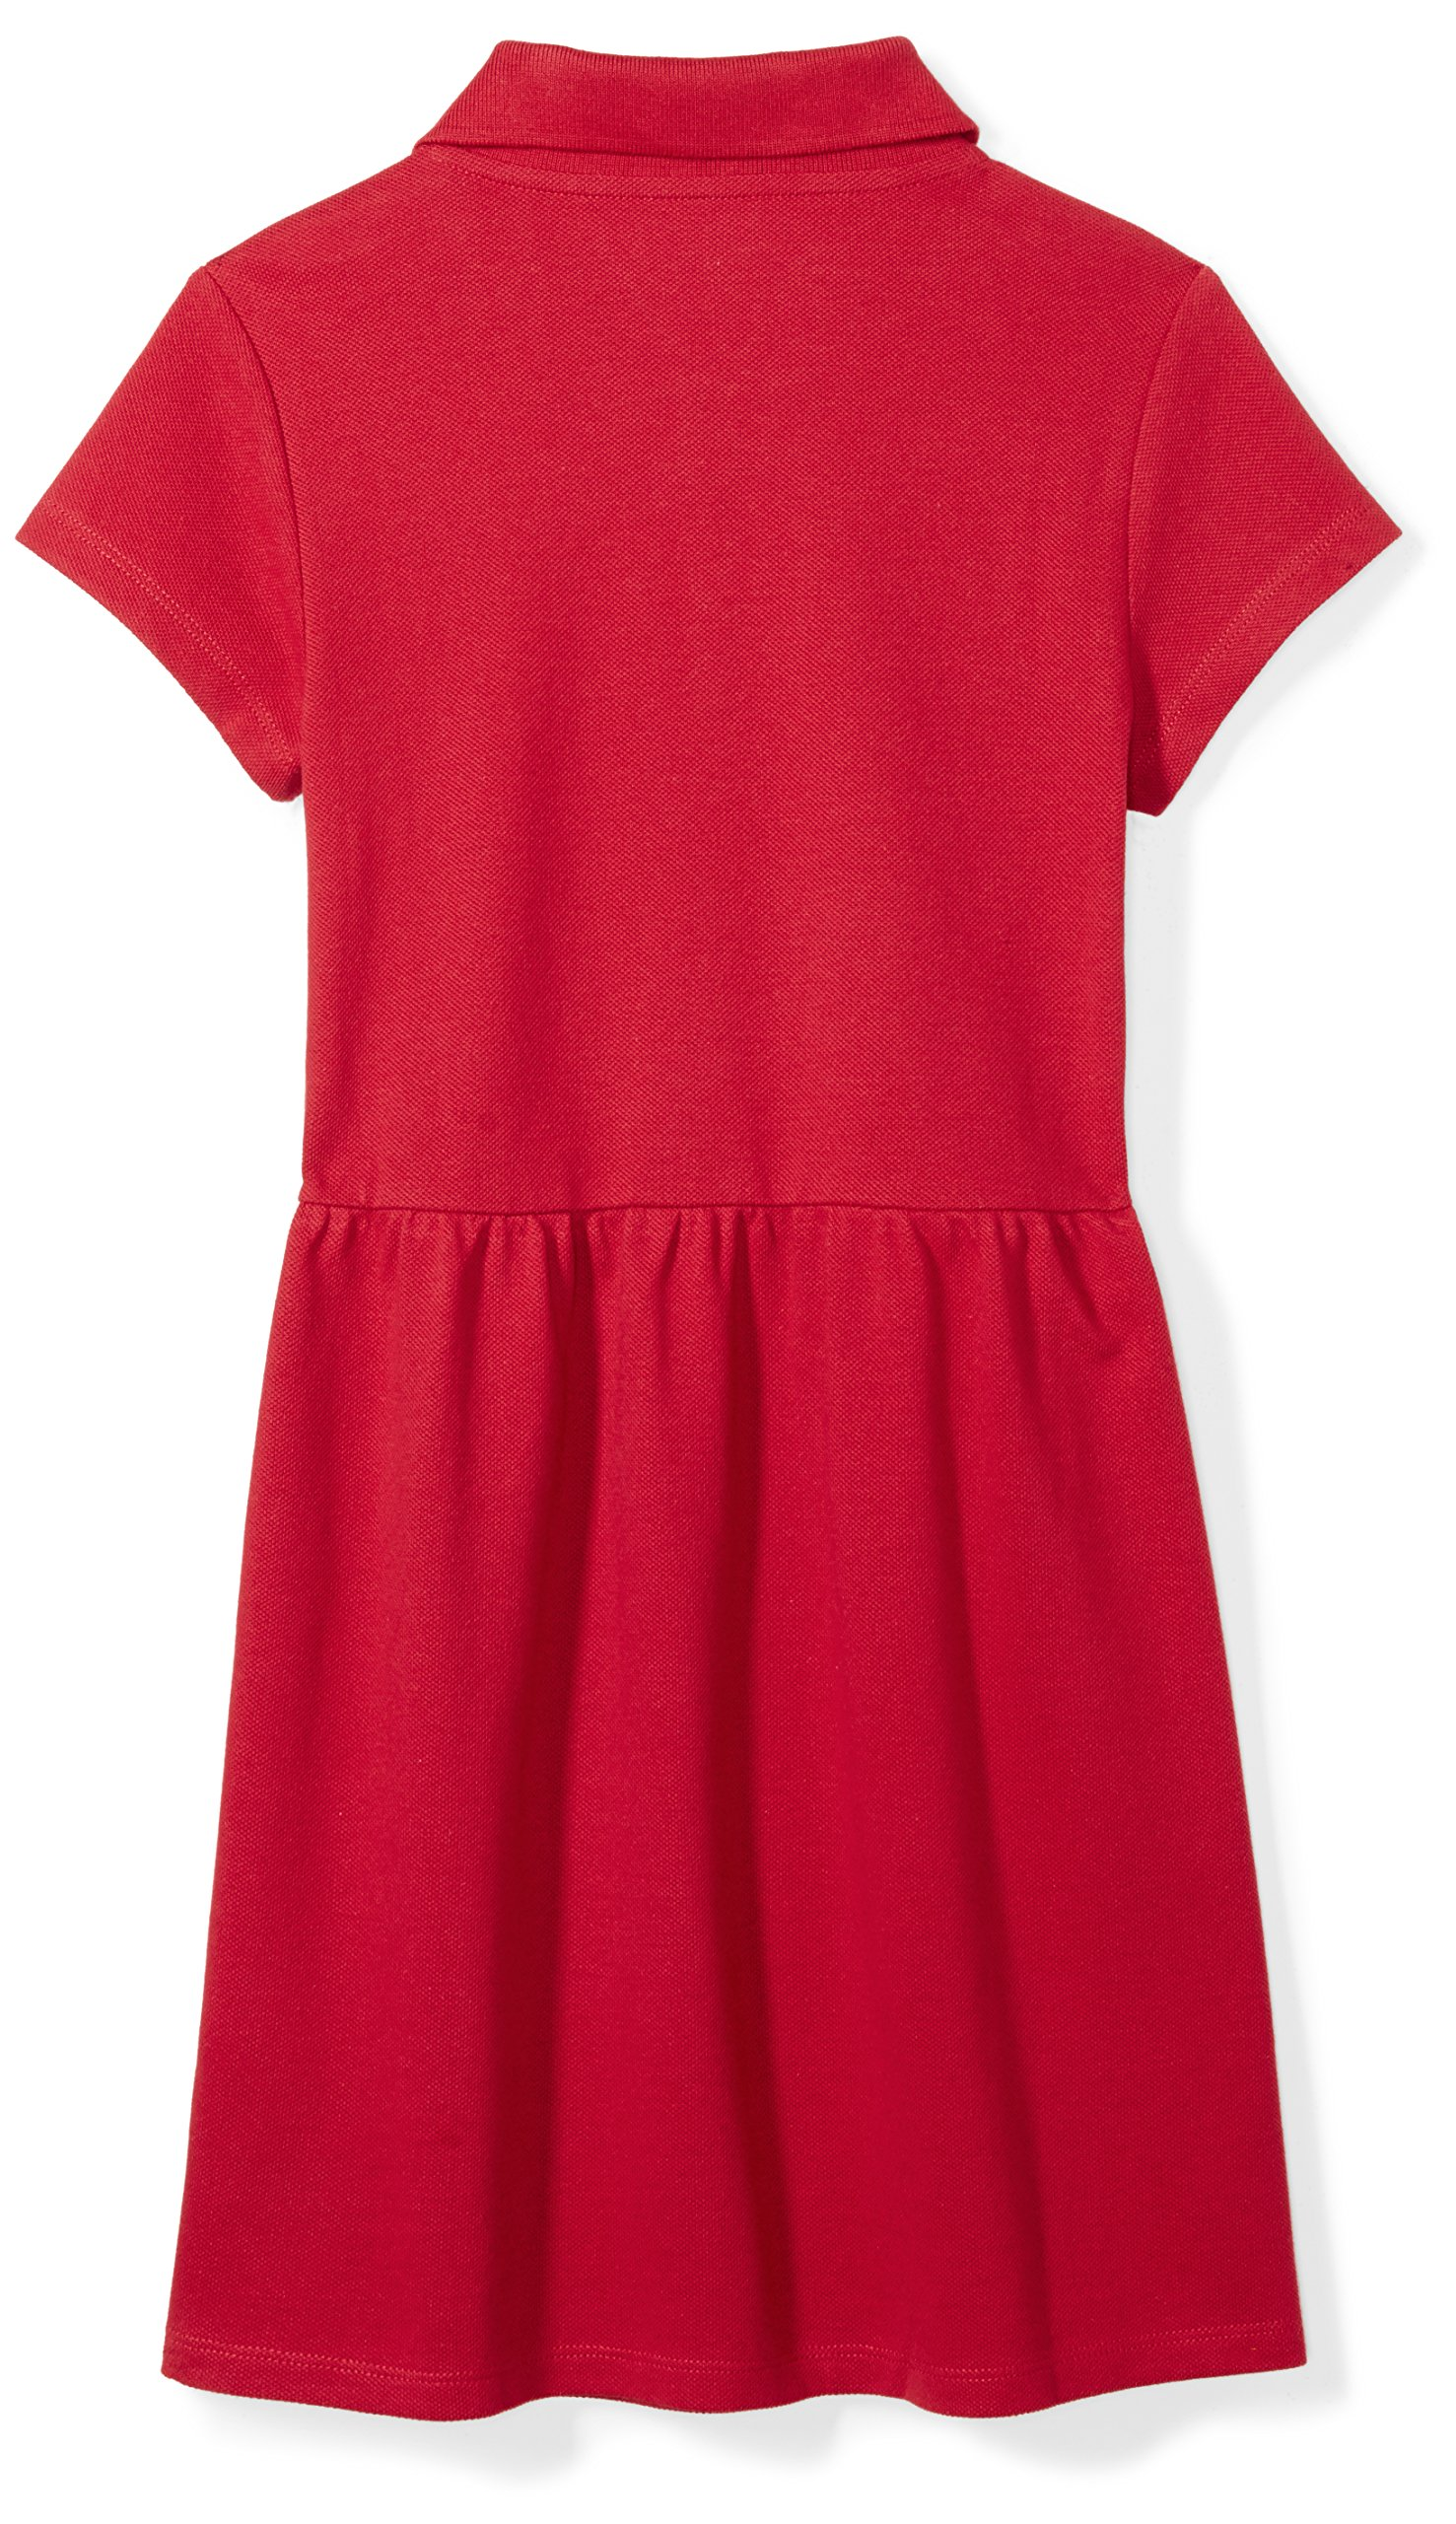 Amazon Essentials Girls' Short-Sleeve Polo Dress, Scooter Red, L (10) by Amazon Essentials (Image #2)